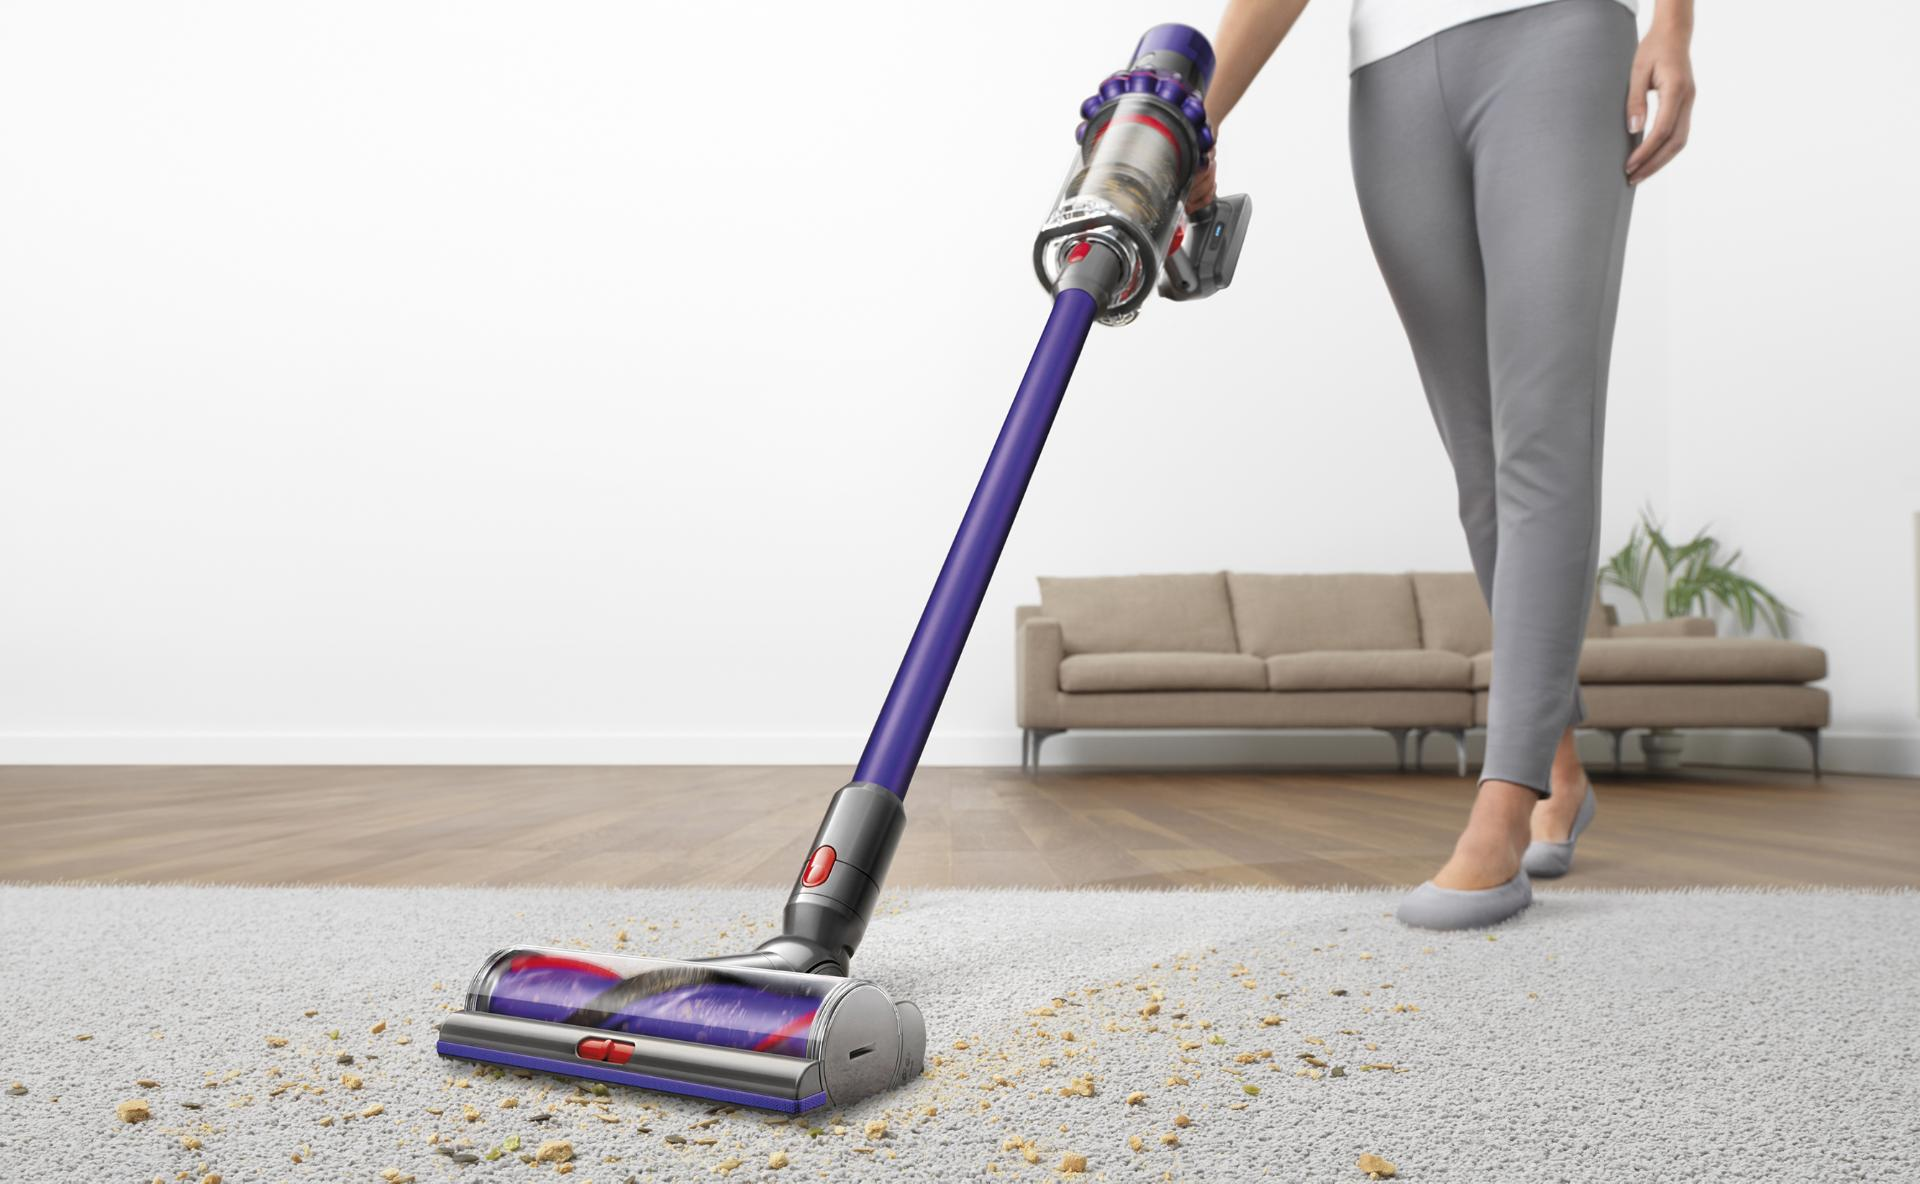 Woman using Dyson vacuum cleaner